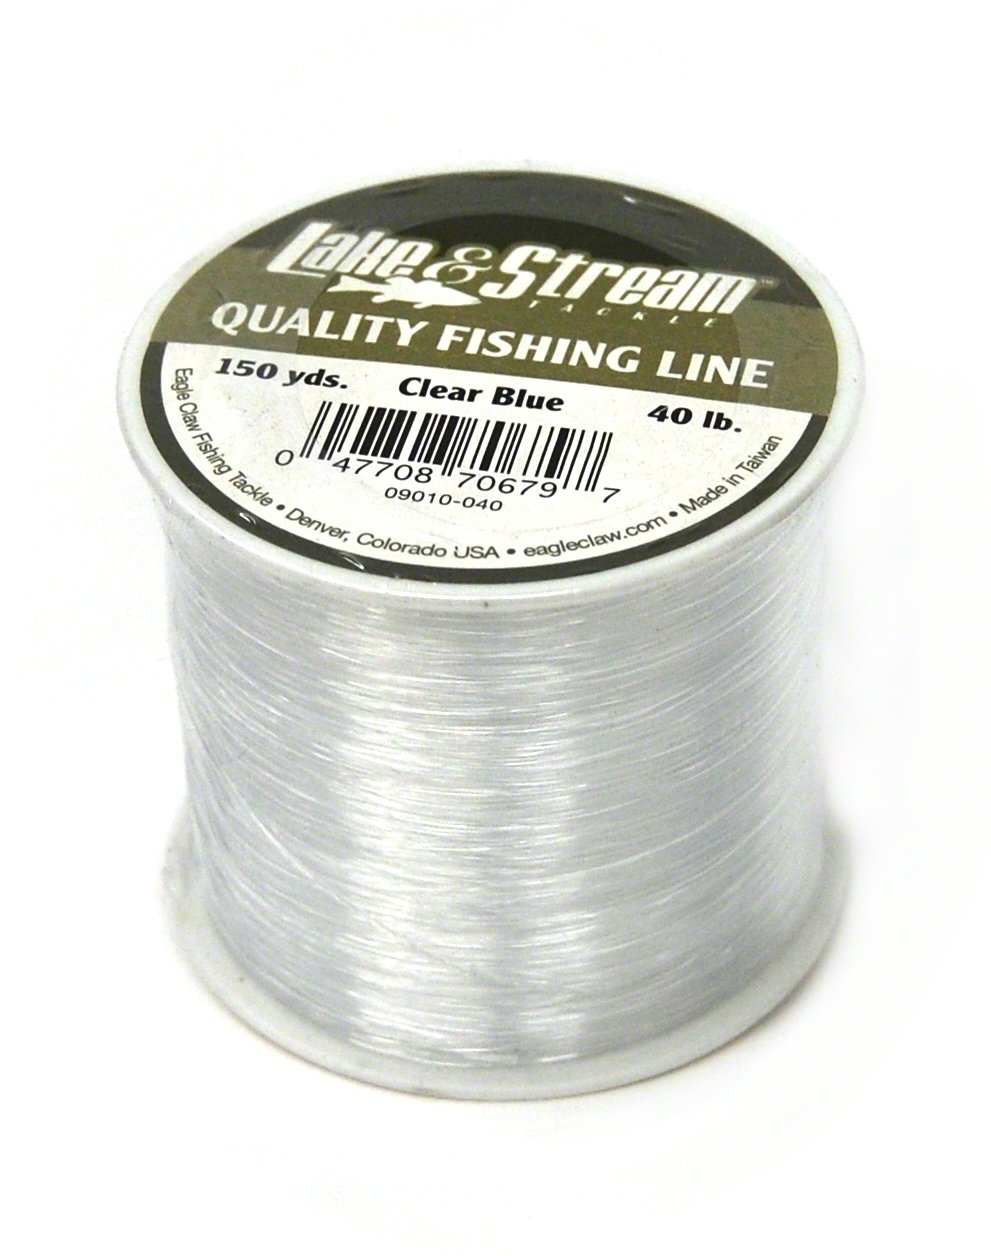 Eagle Claw 50 lb. Test Clear Blue Mono Line – 120 Yards